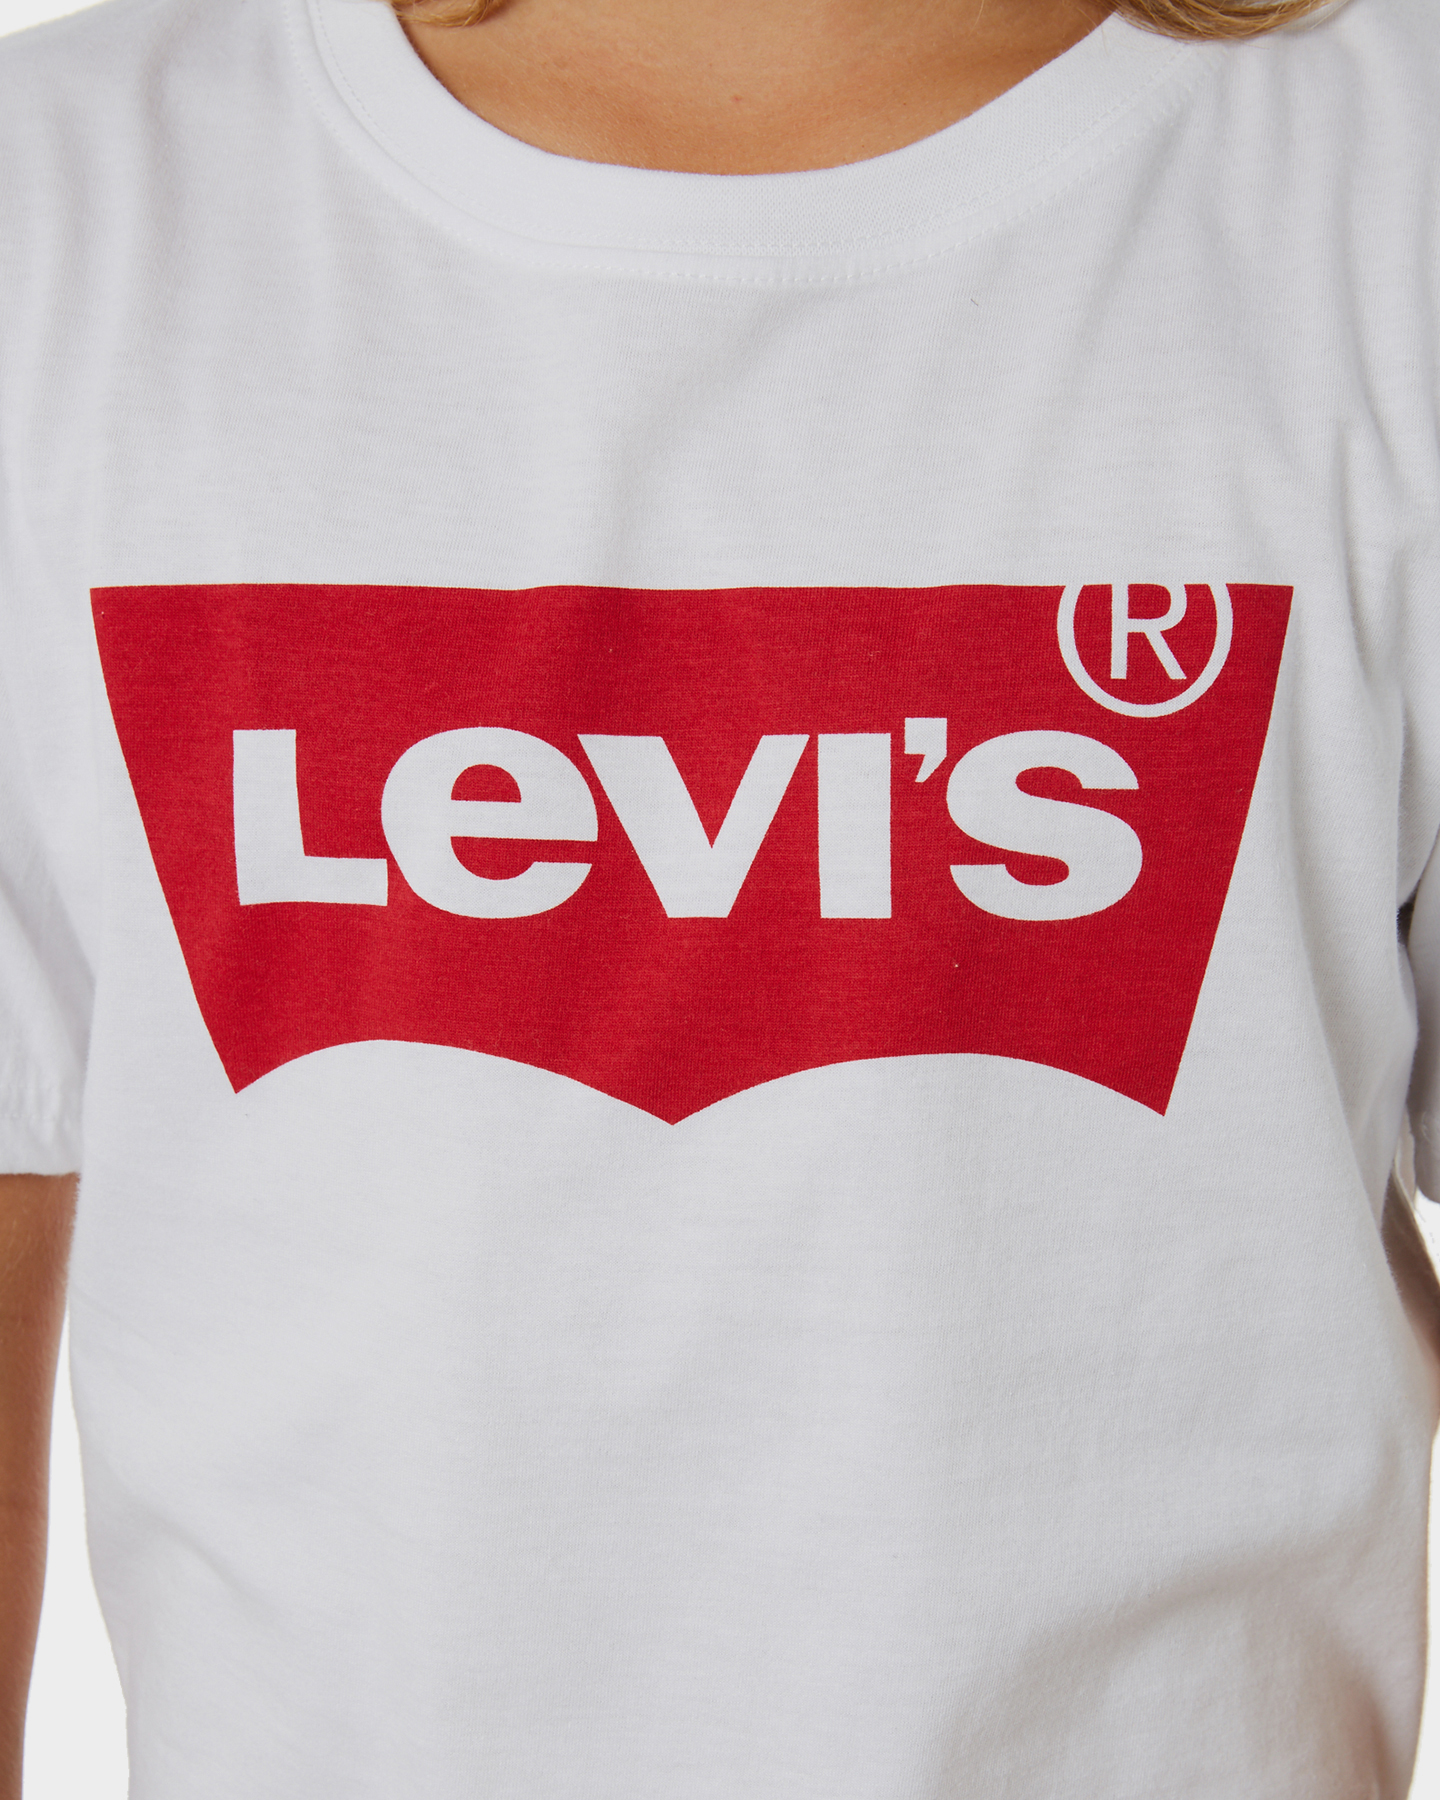 b973a8ce202 Levi's Boys Graphic Tee - Teens - White | SurfStitch